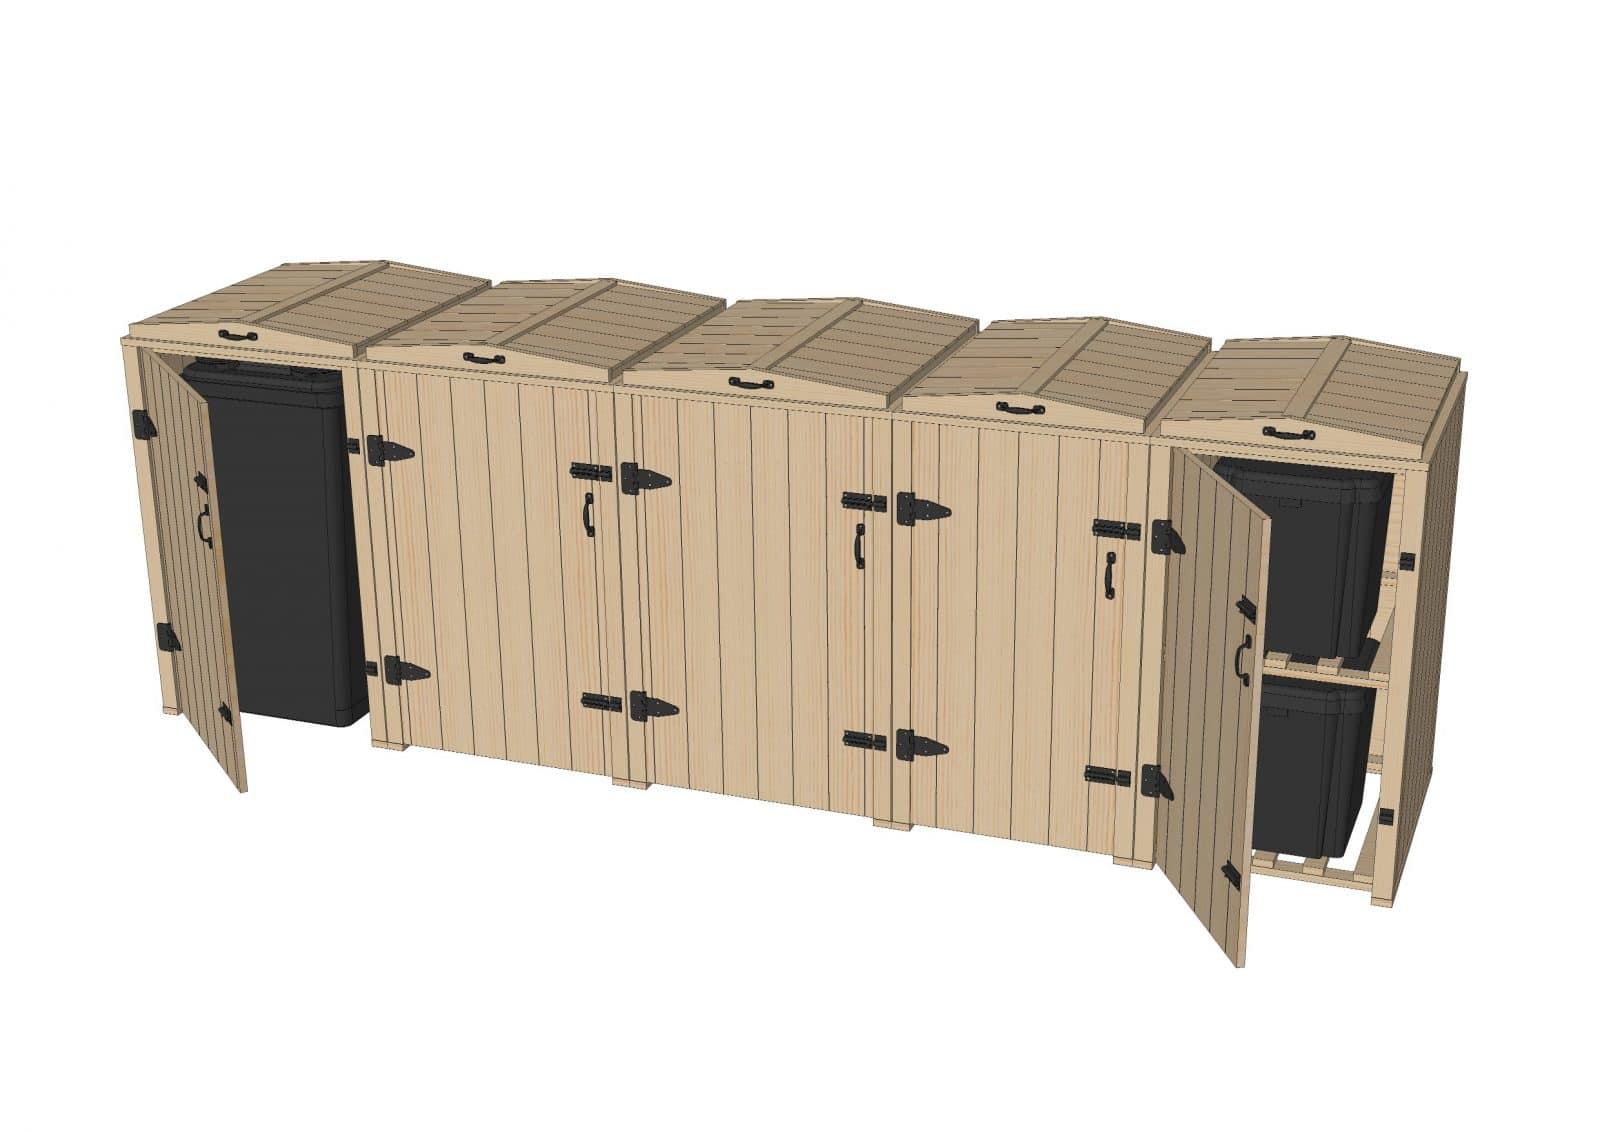 Bellus Double Wheelie Bin 6 Recycle Box Storage